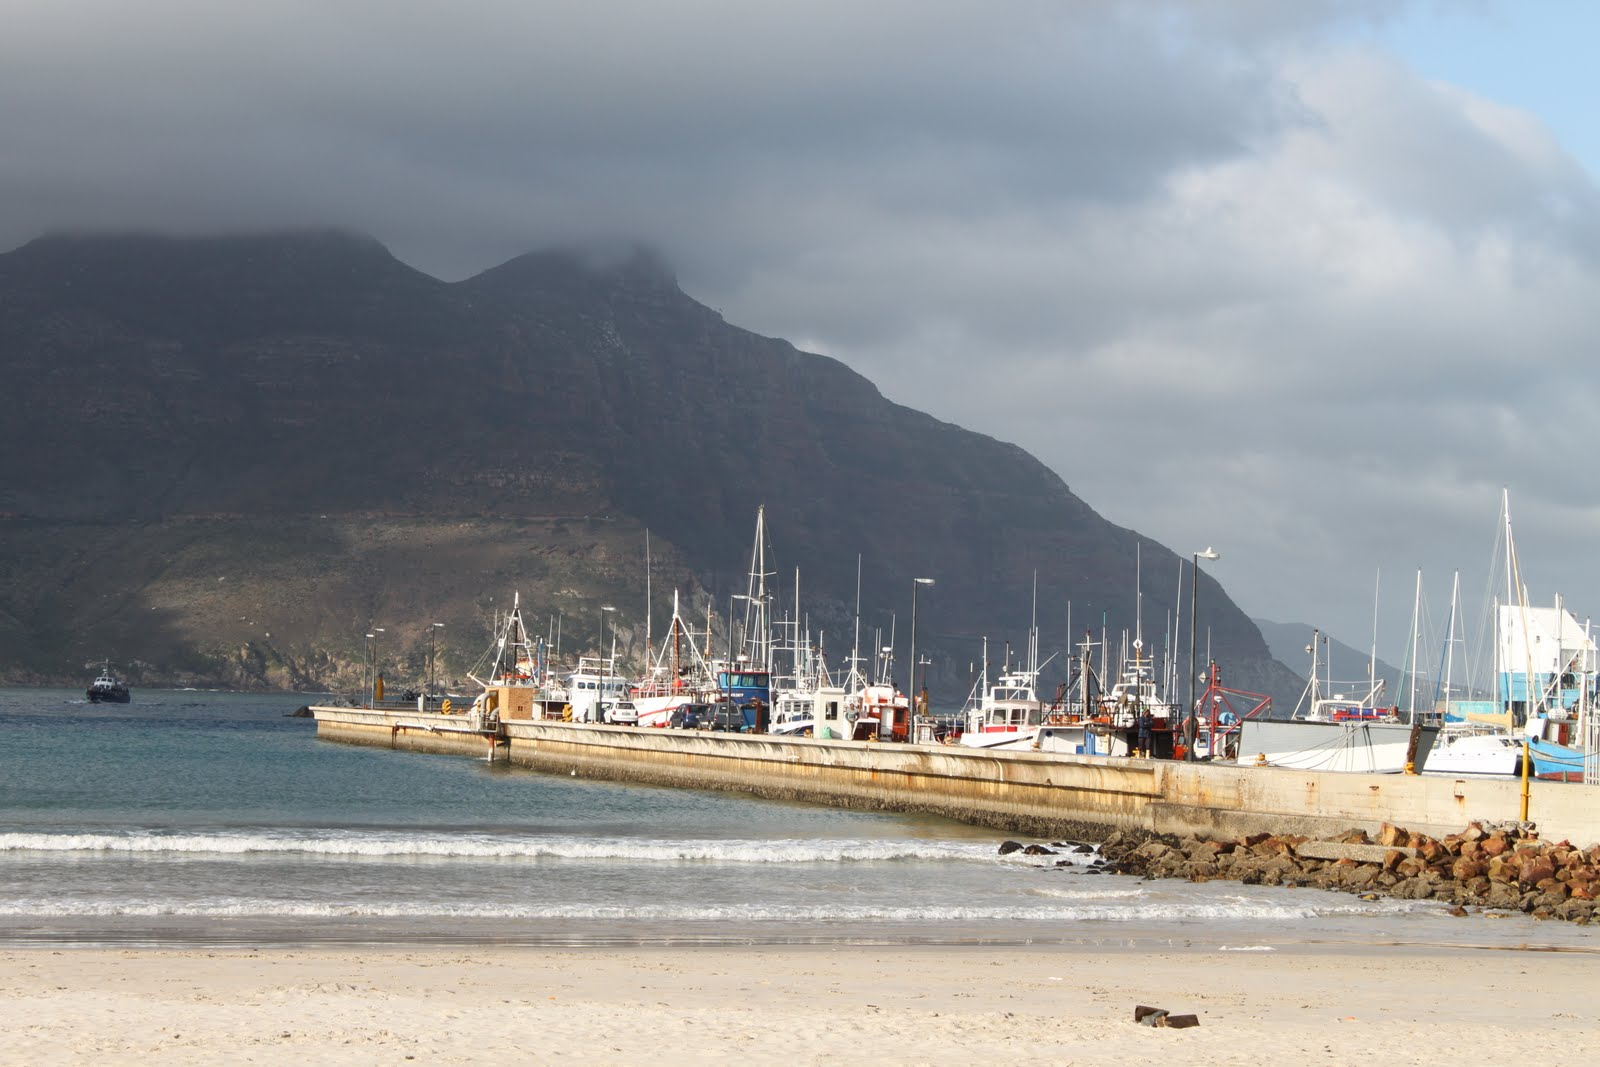 Hout Bay harbour in Cape Town